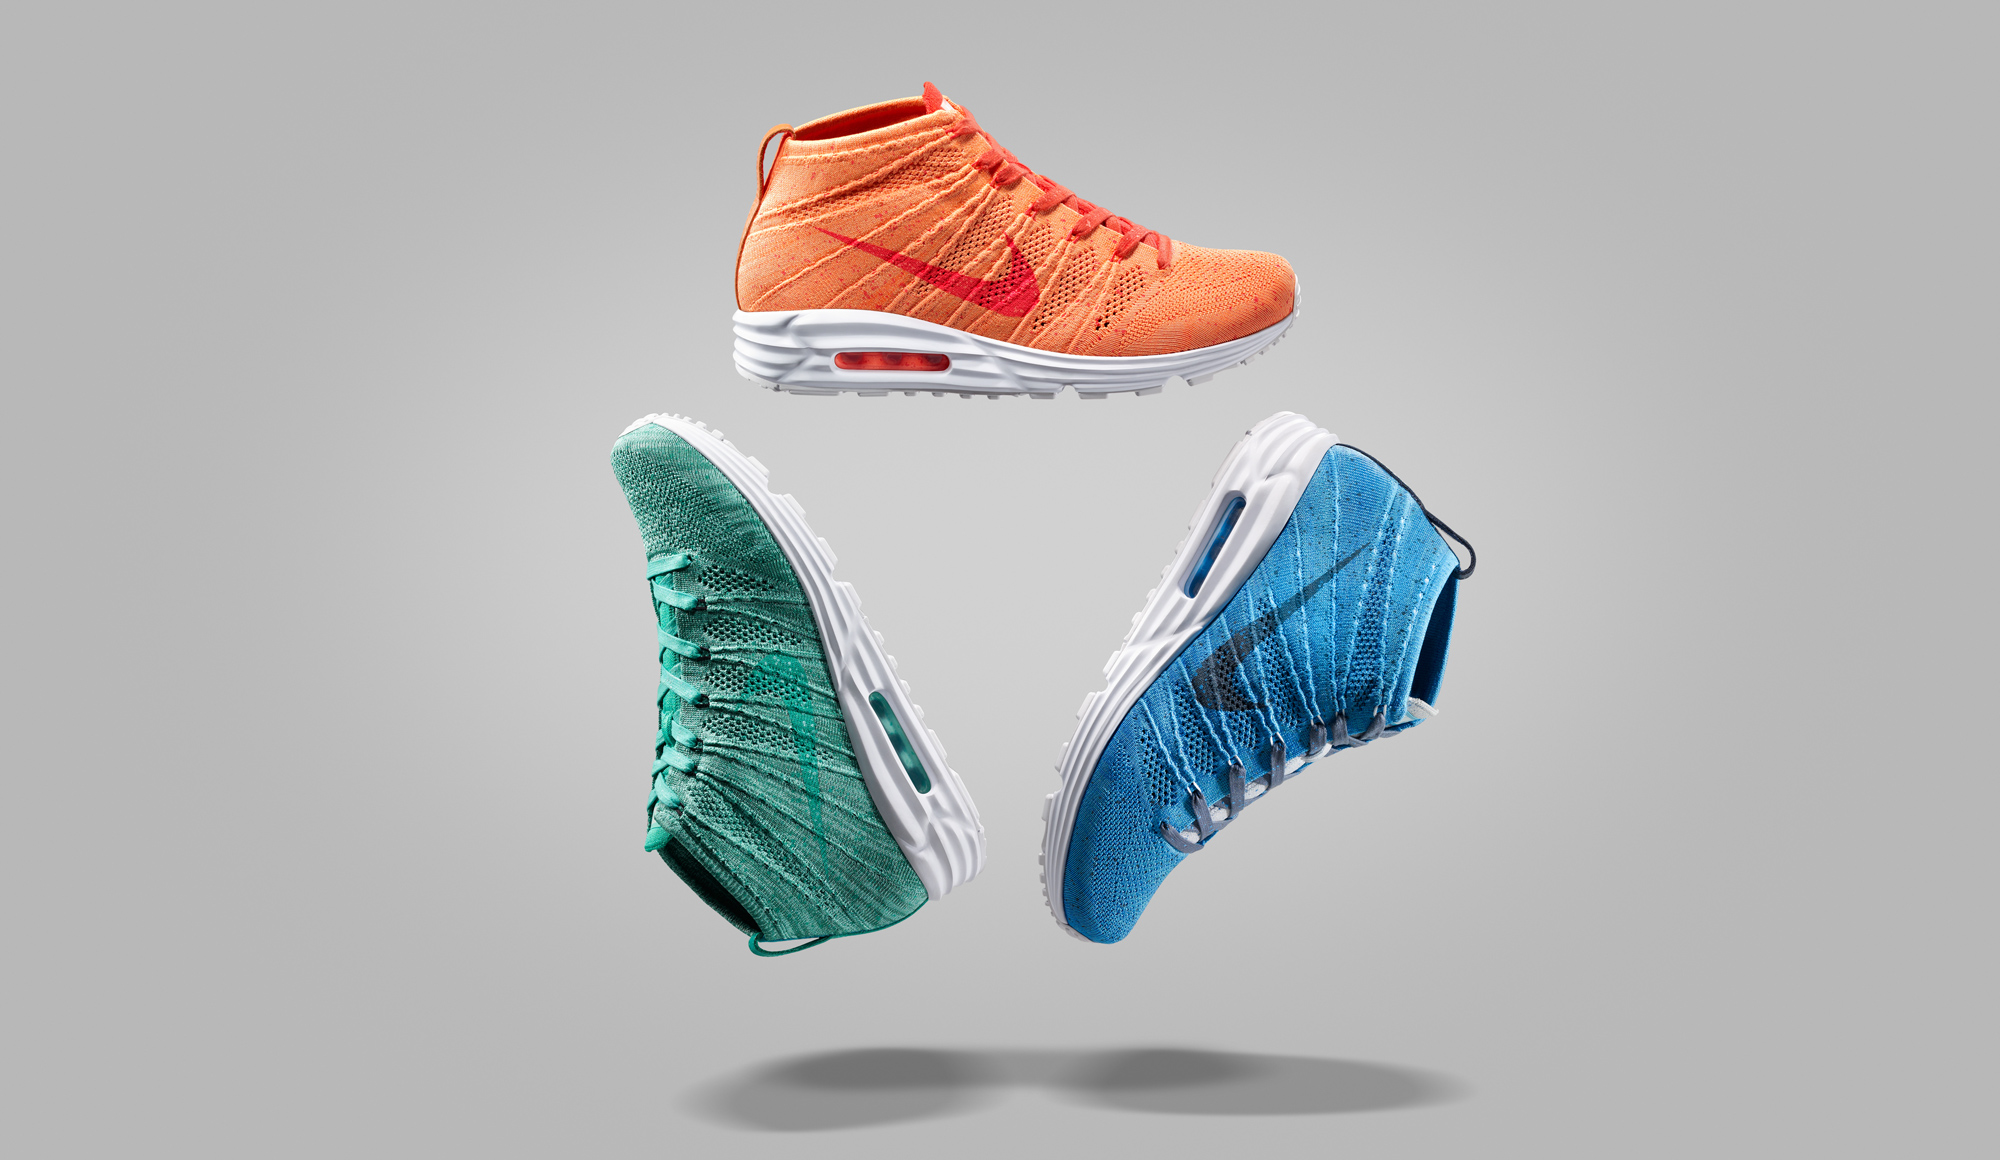 Nike Flyknit Air Max Black/Chlorine Blue Total Orange White